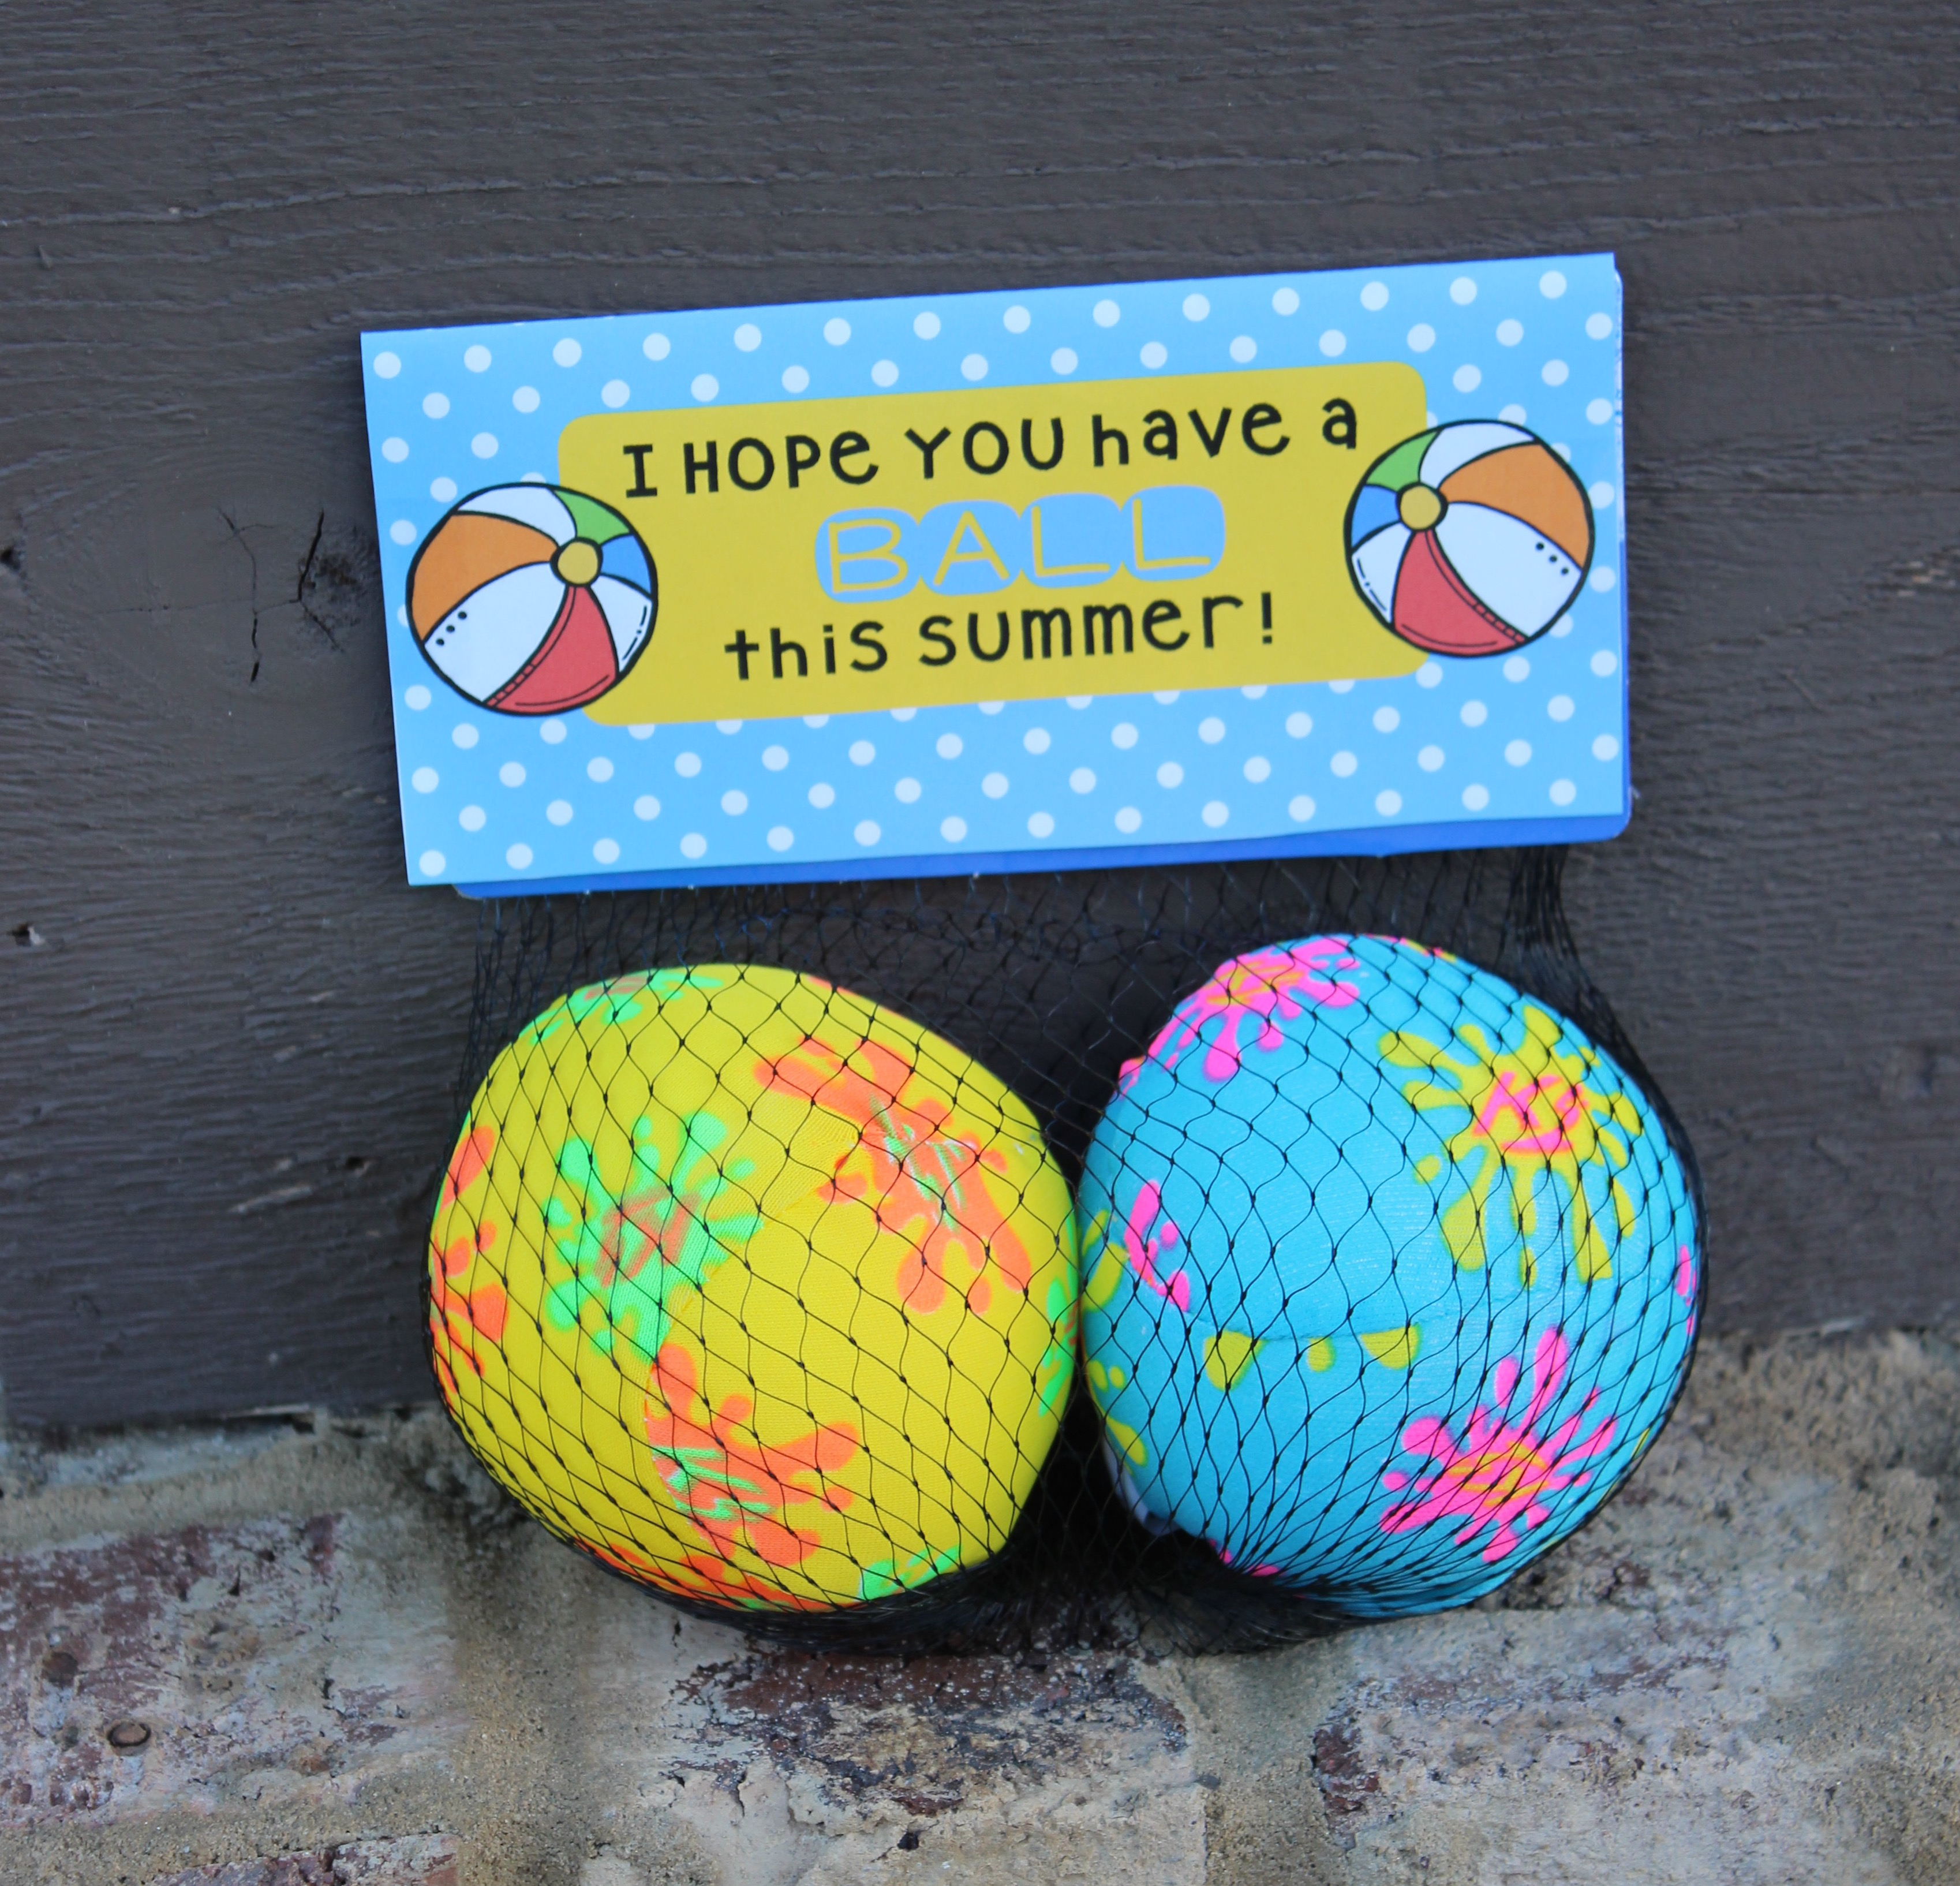 photograph about Have a Ball This Summer Free Printable named Consist of a Ball this Summer season! Cost-free Stop of Calendar year Present Tag Printable